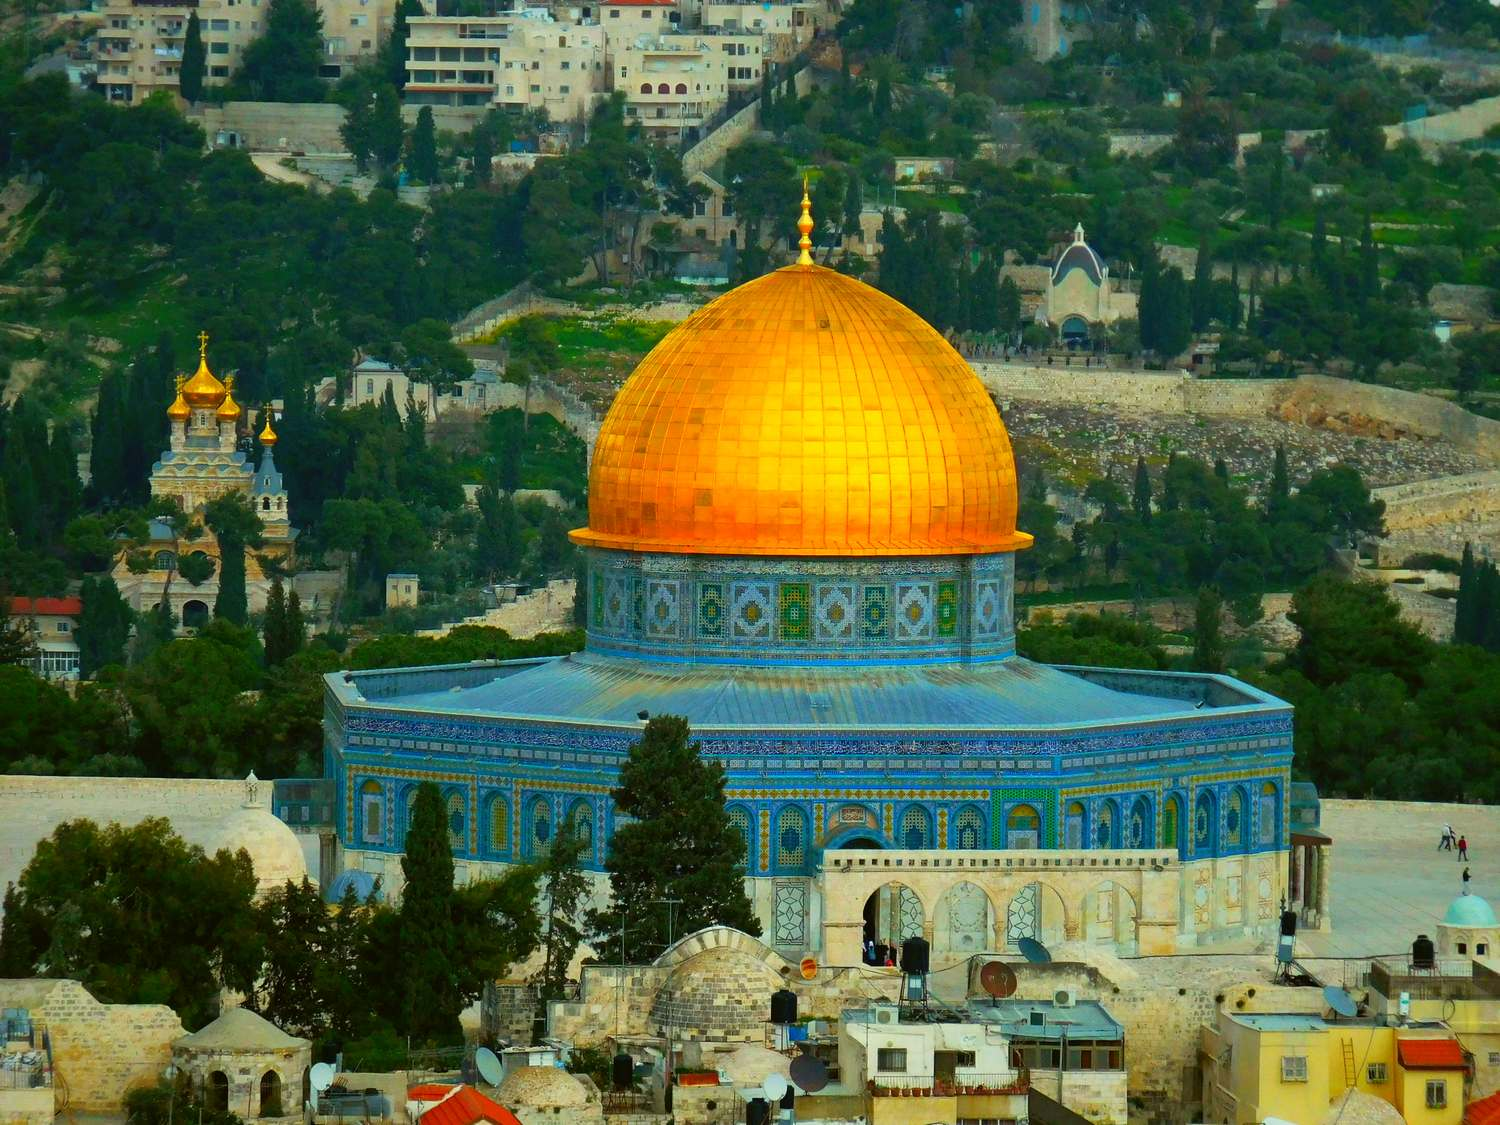 History of Jerusalem, Dome of the Rock, aerial view